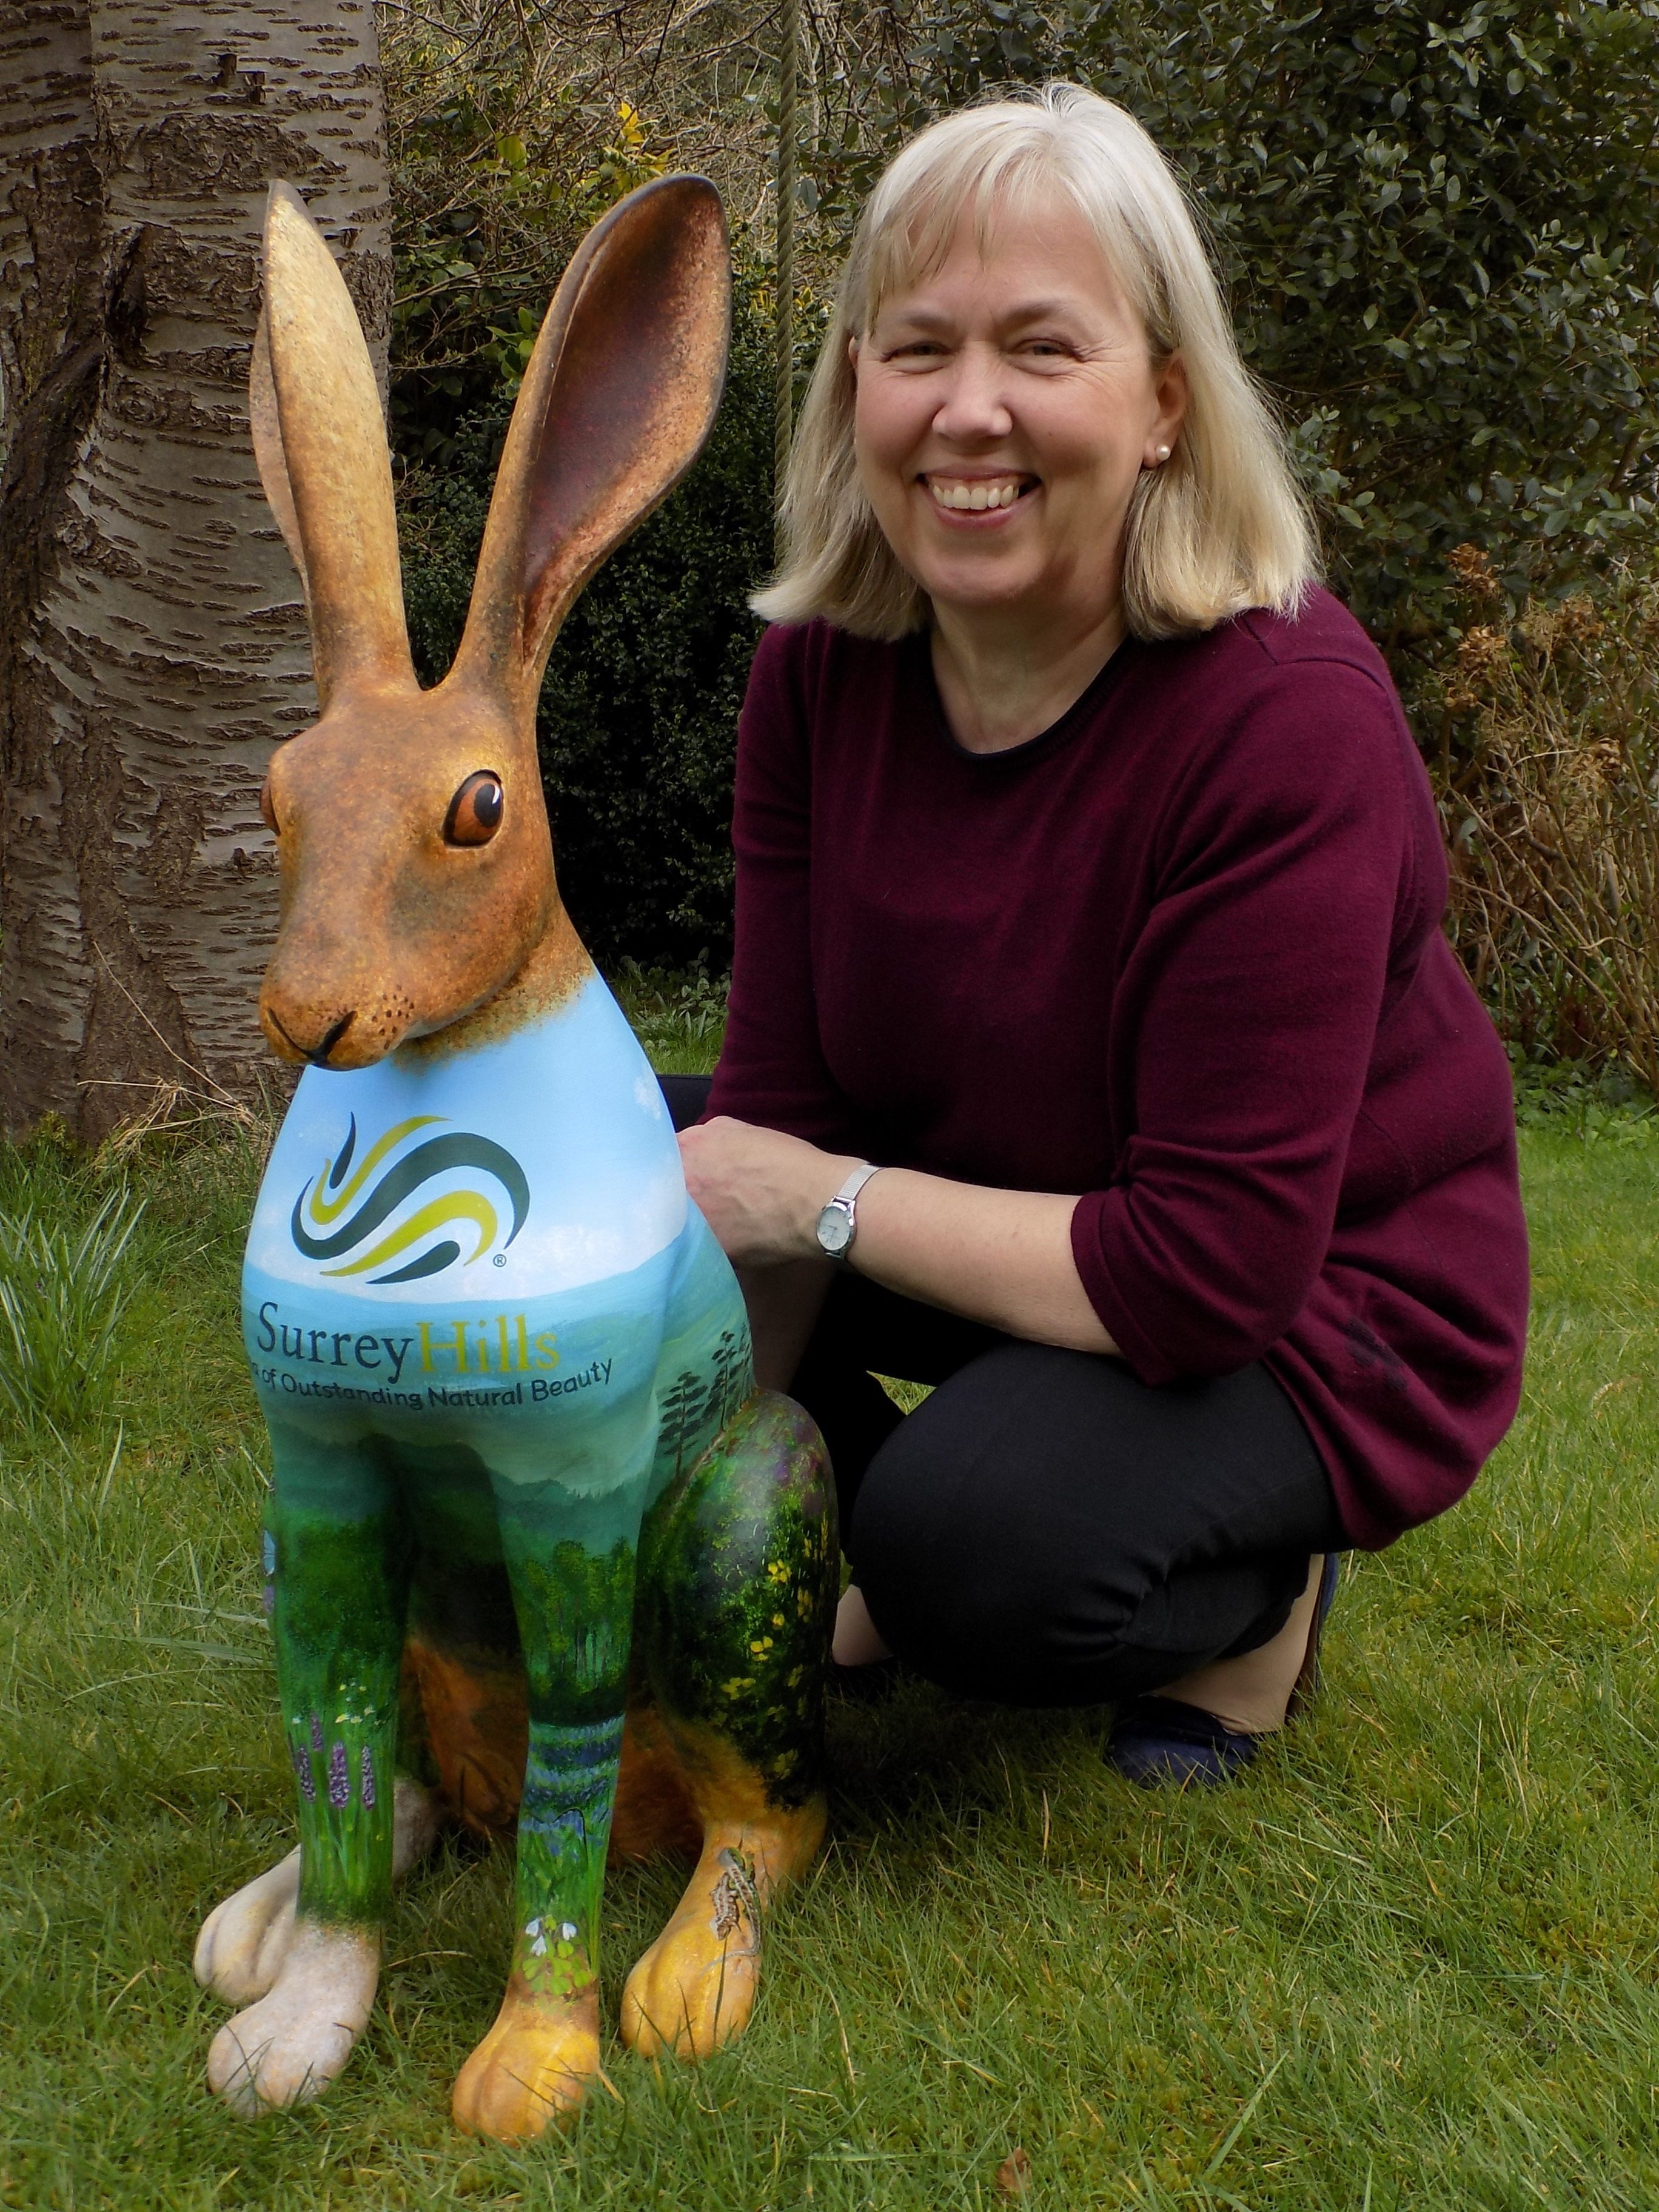 Charlotte Choi (artist) with the Surrey Hills HareRW